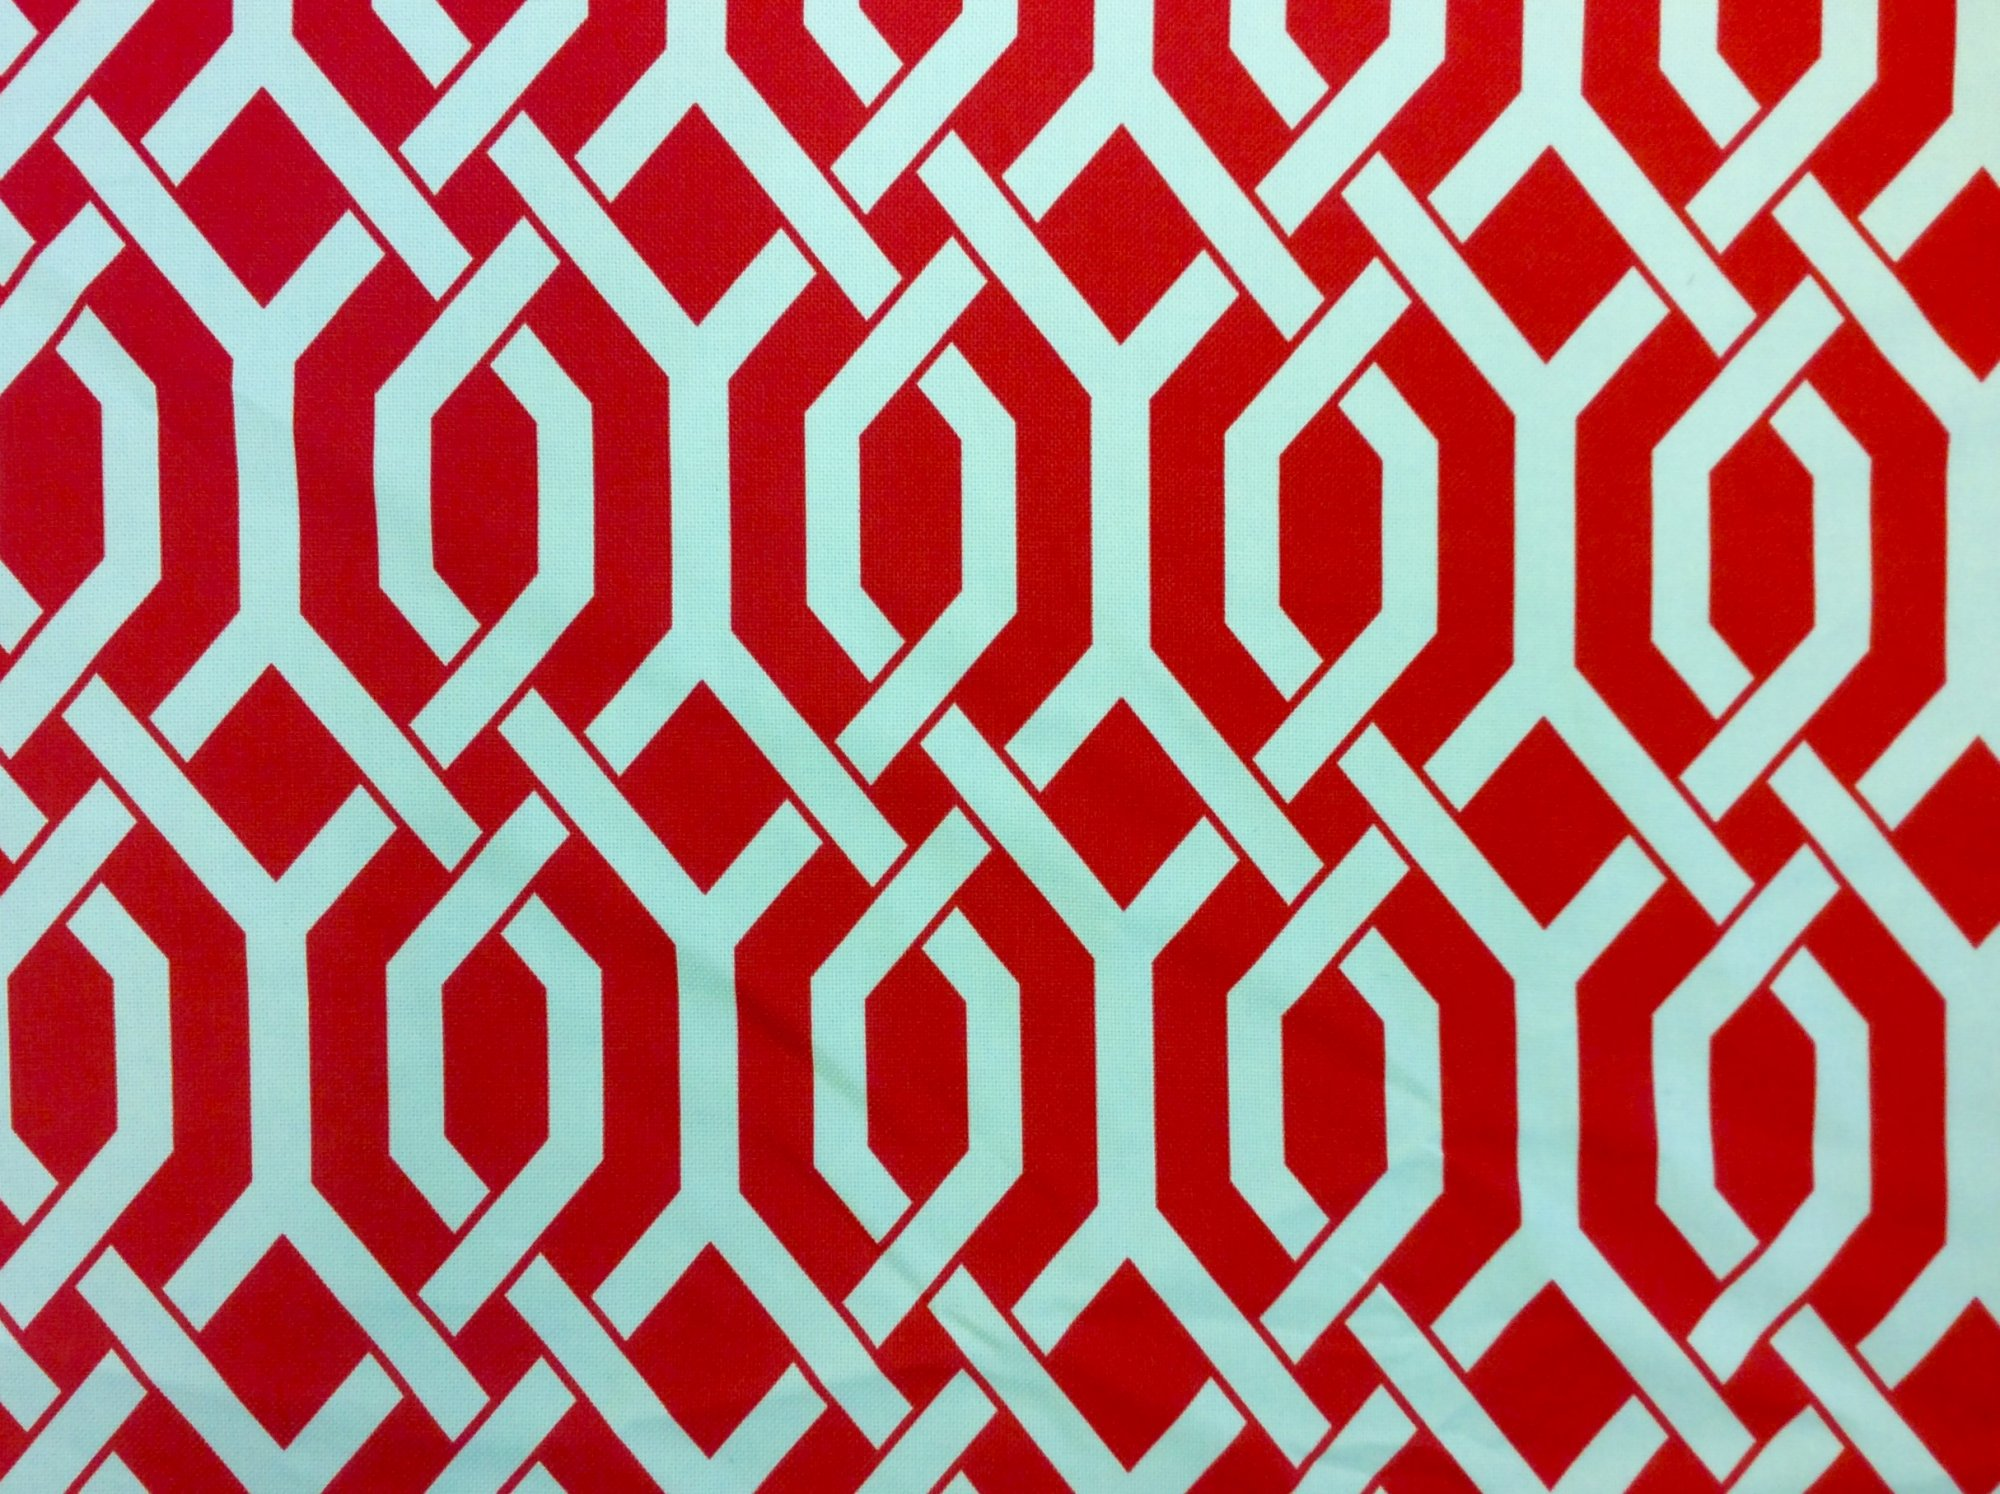 Lattice Modern Geometric Adler Lattice Style Famous Maker Soft Thick Acrylic Outdoor Fabric Slubby Barkcloth Texture Coral Orange Red Colorway S580